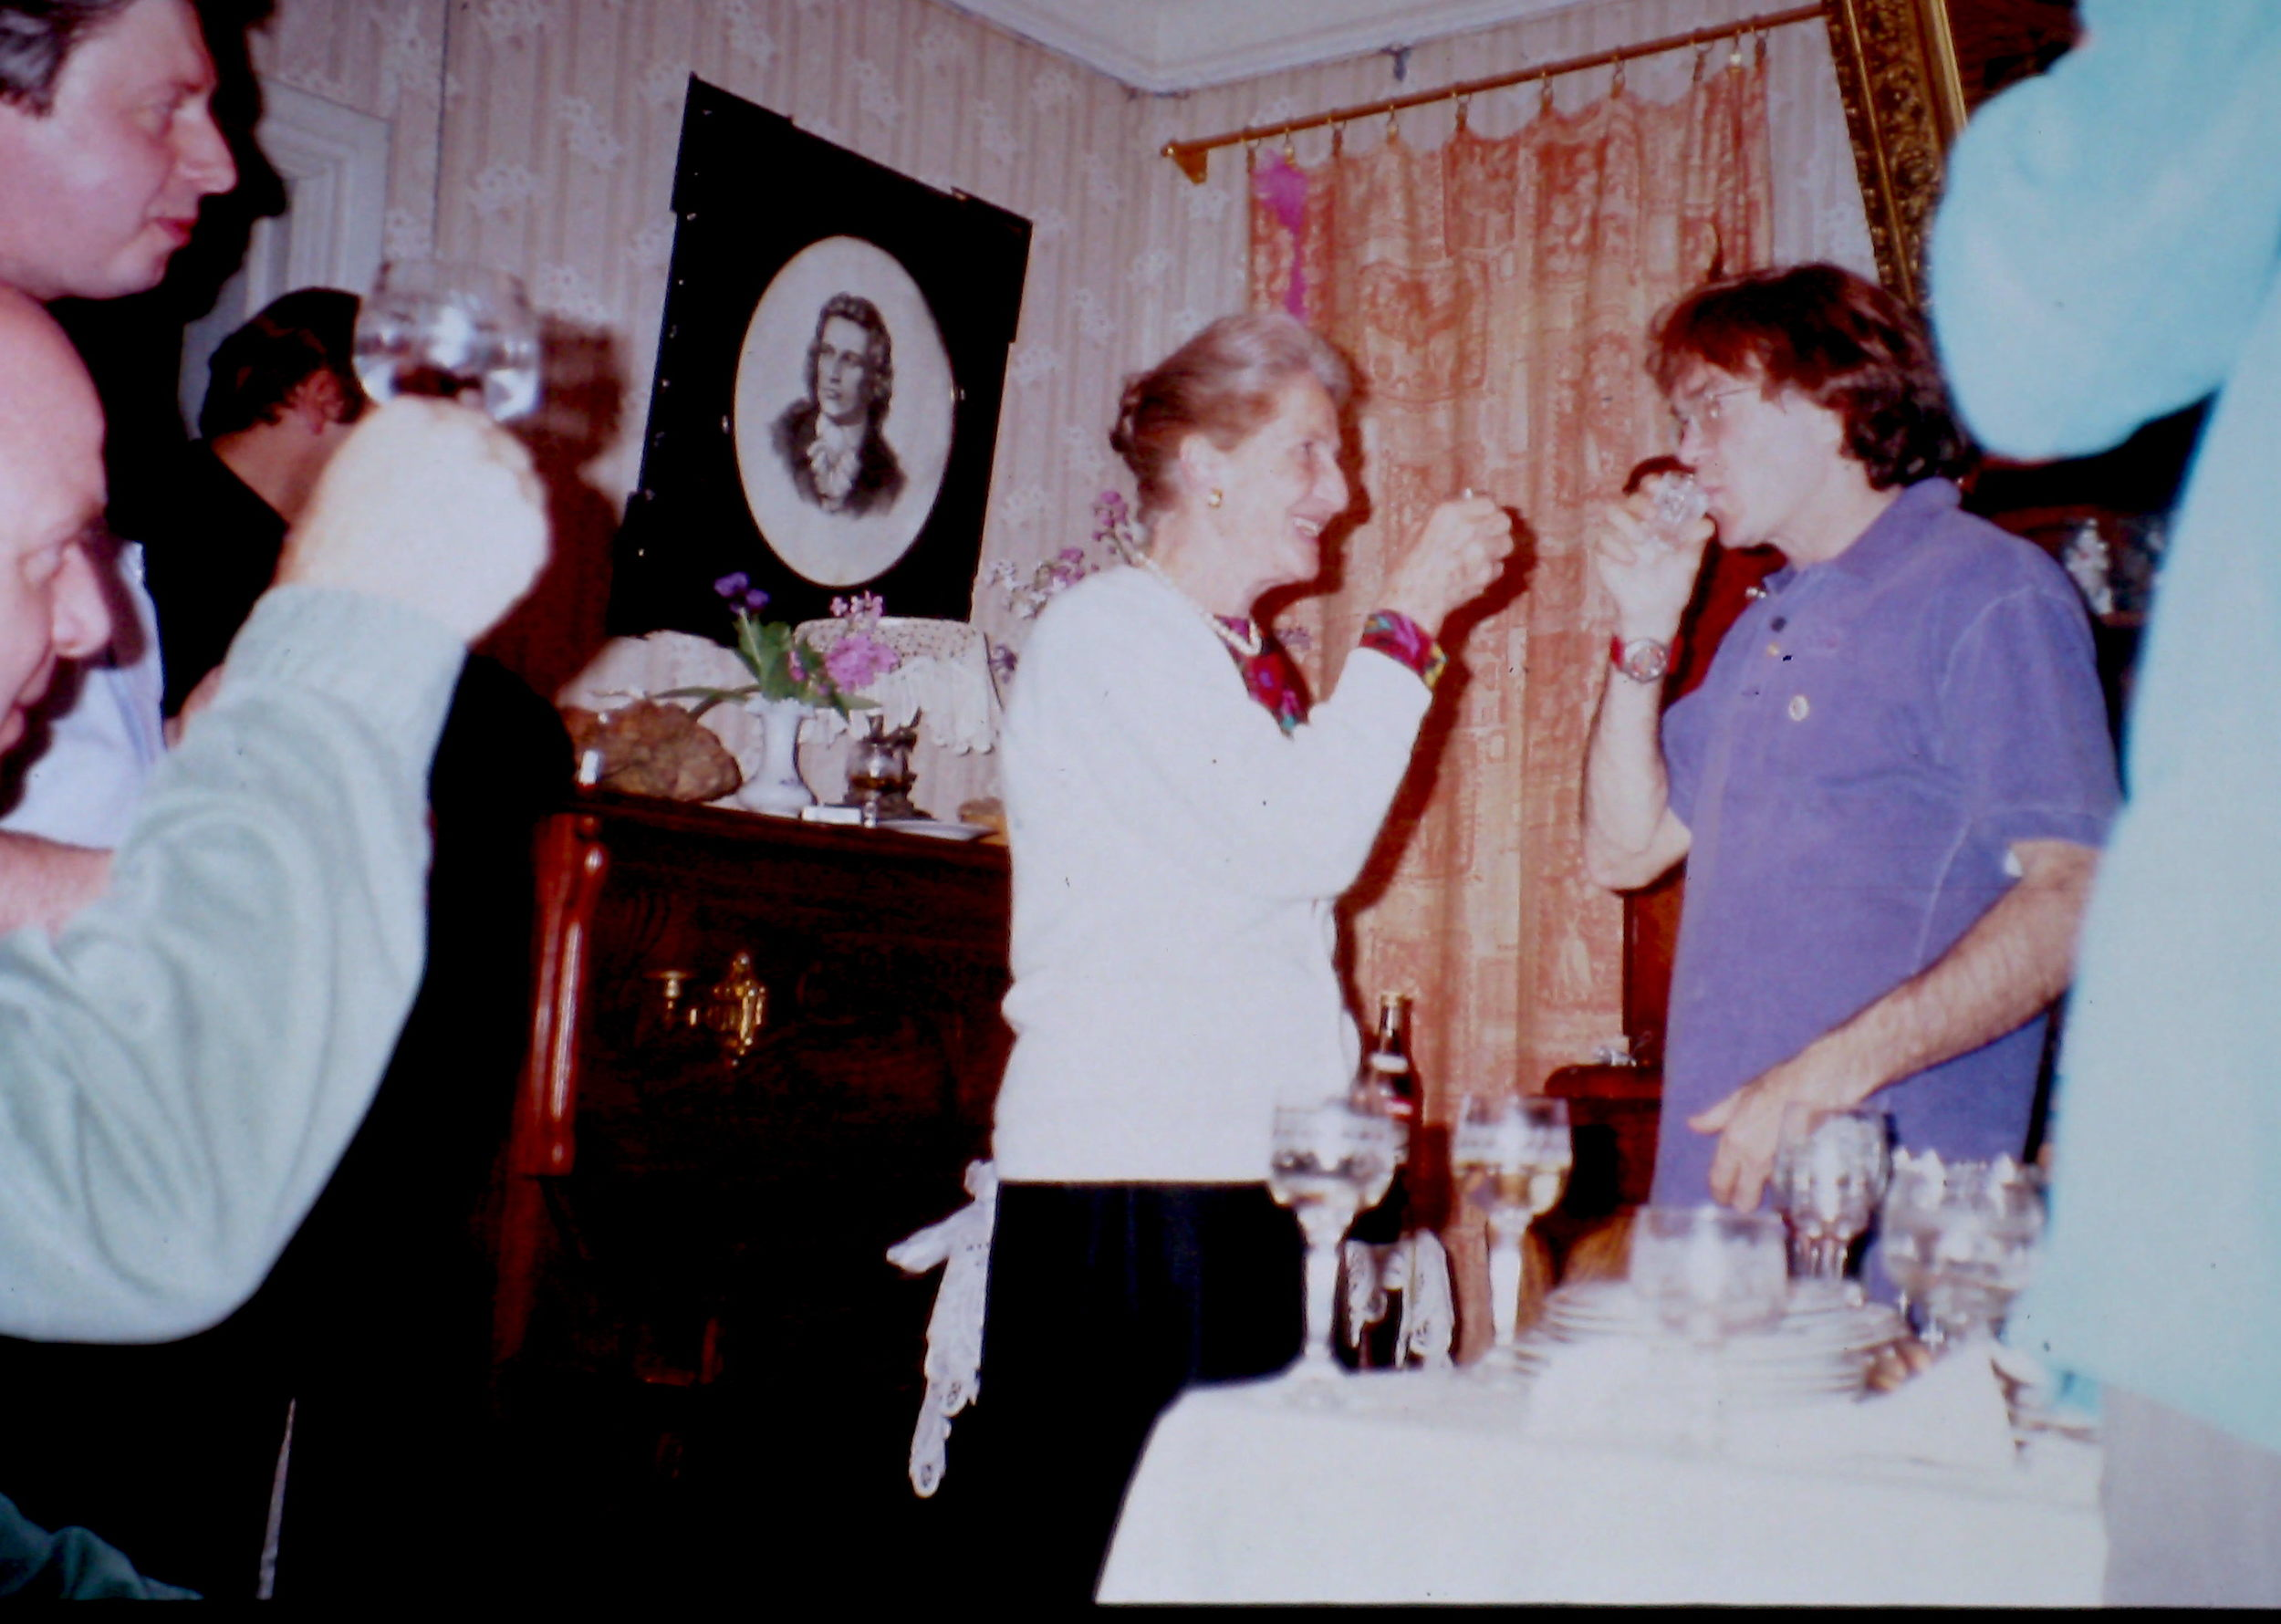 Mrs. Vieve Gore and Will Steger toast Trans-Antarctica in Victor Boyarsky's home in Leningrad. Photo: Cathy de Moll